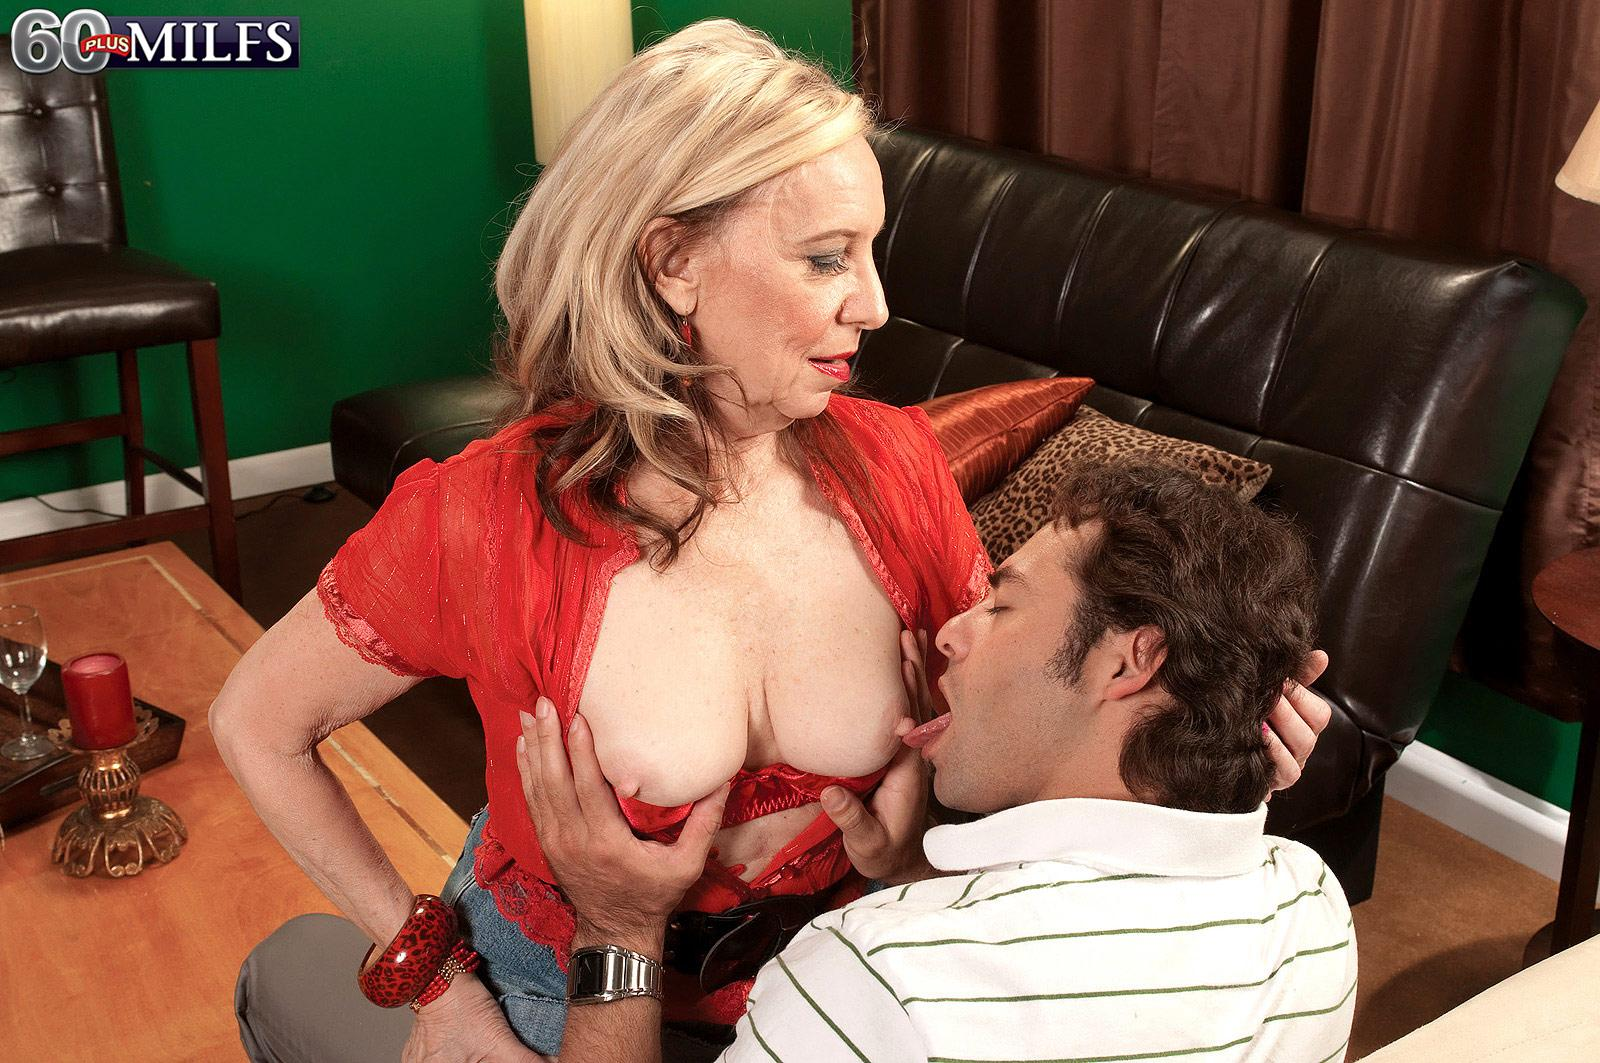 Golden-haired MILF over 60 Miranda Torri unsheathing large natural breasts and bare butt